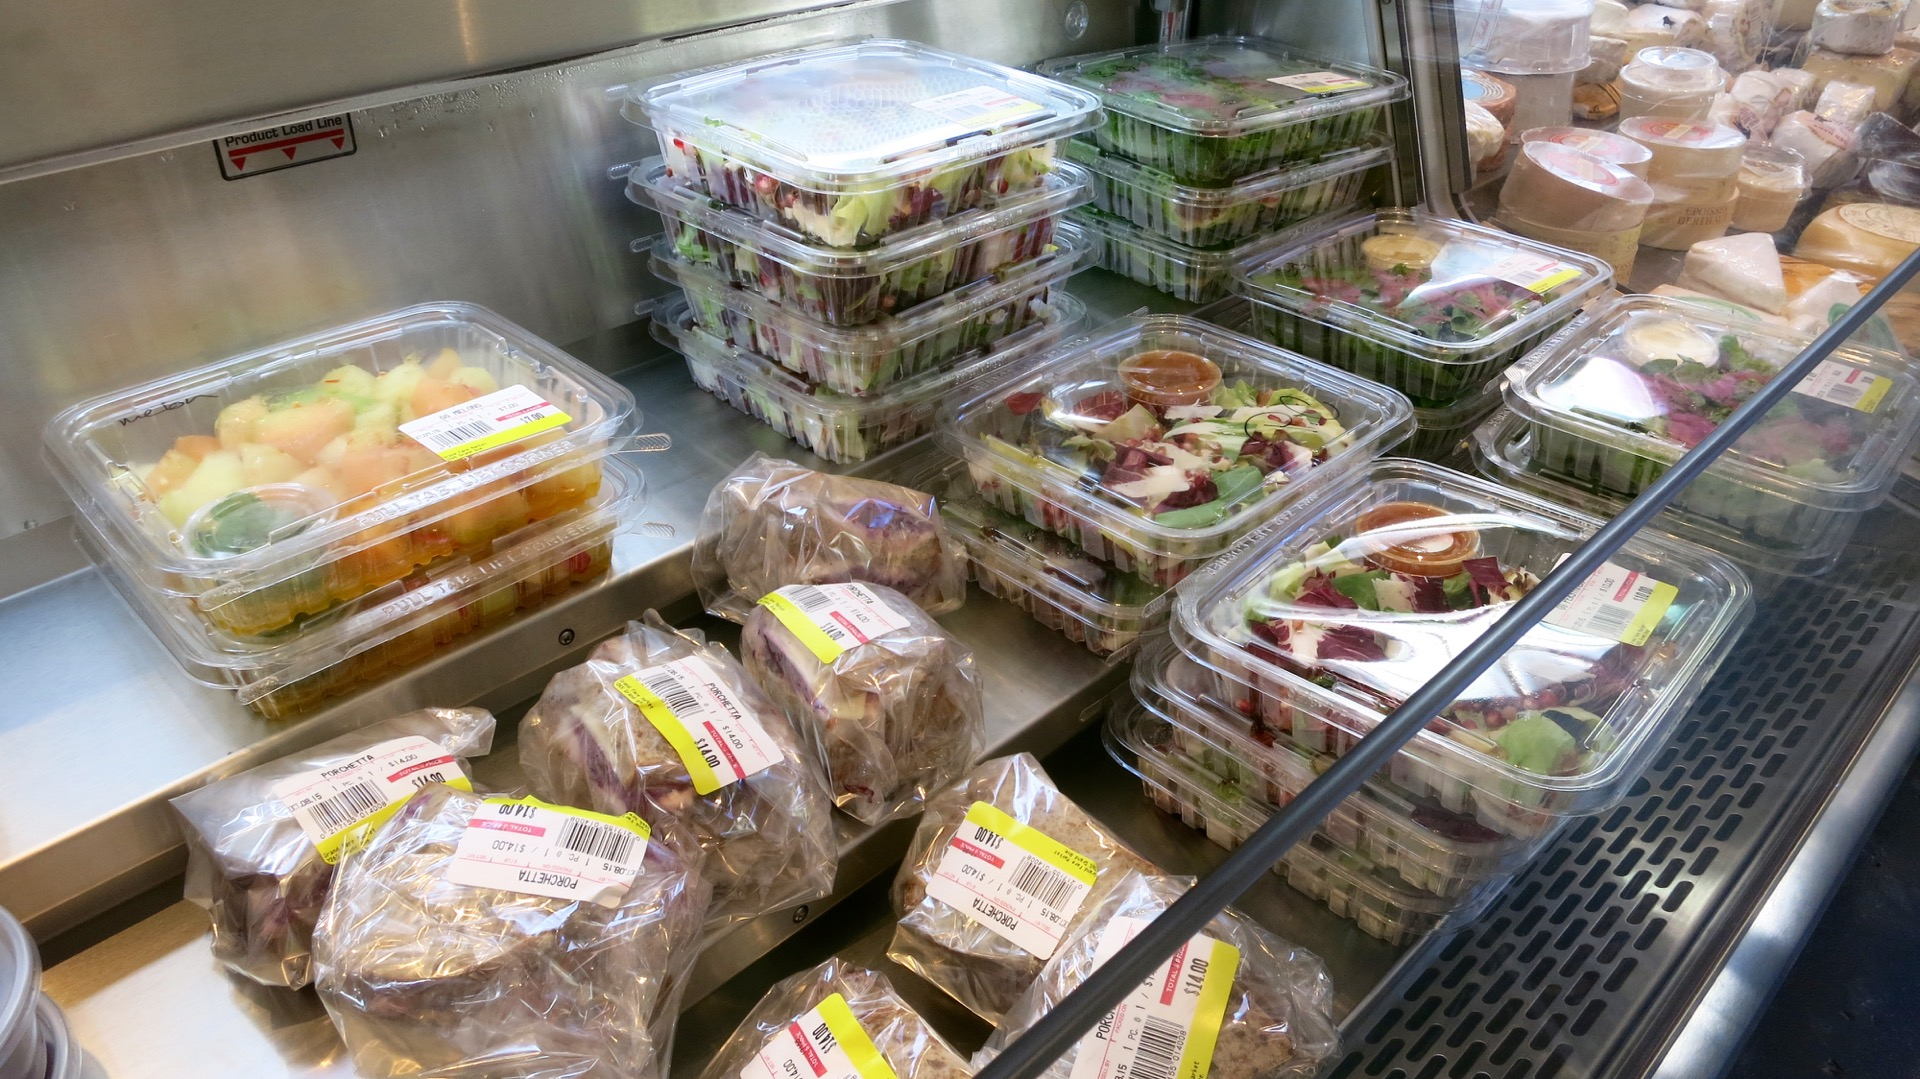 Pre-packaged sandwiches and salads.